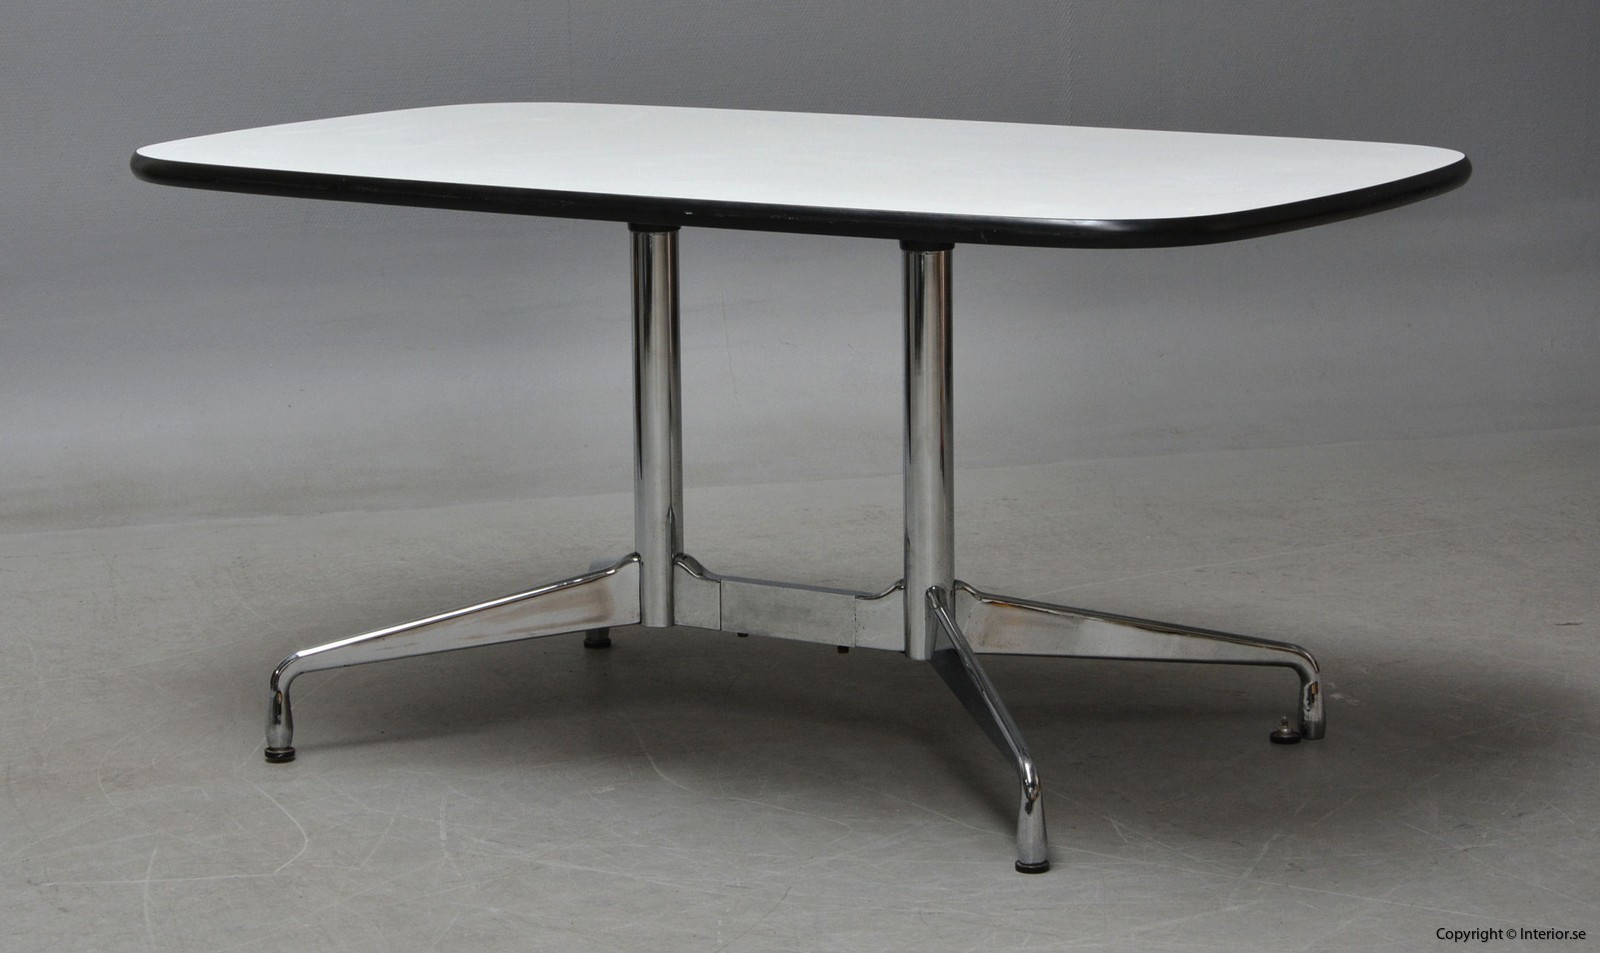 Bord table tisch Herman Miller Segmented Table - Charles & Ray Eames 2